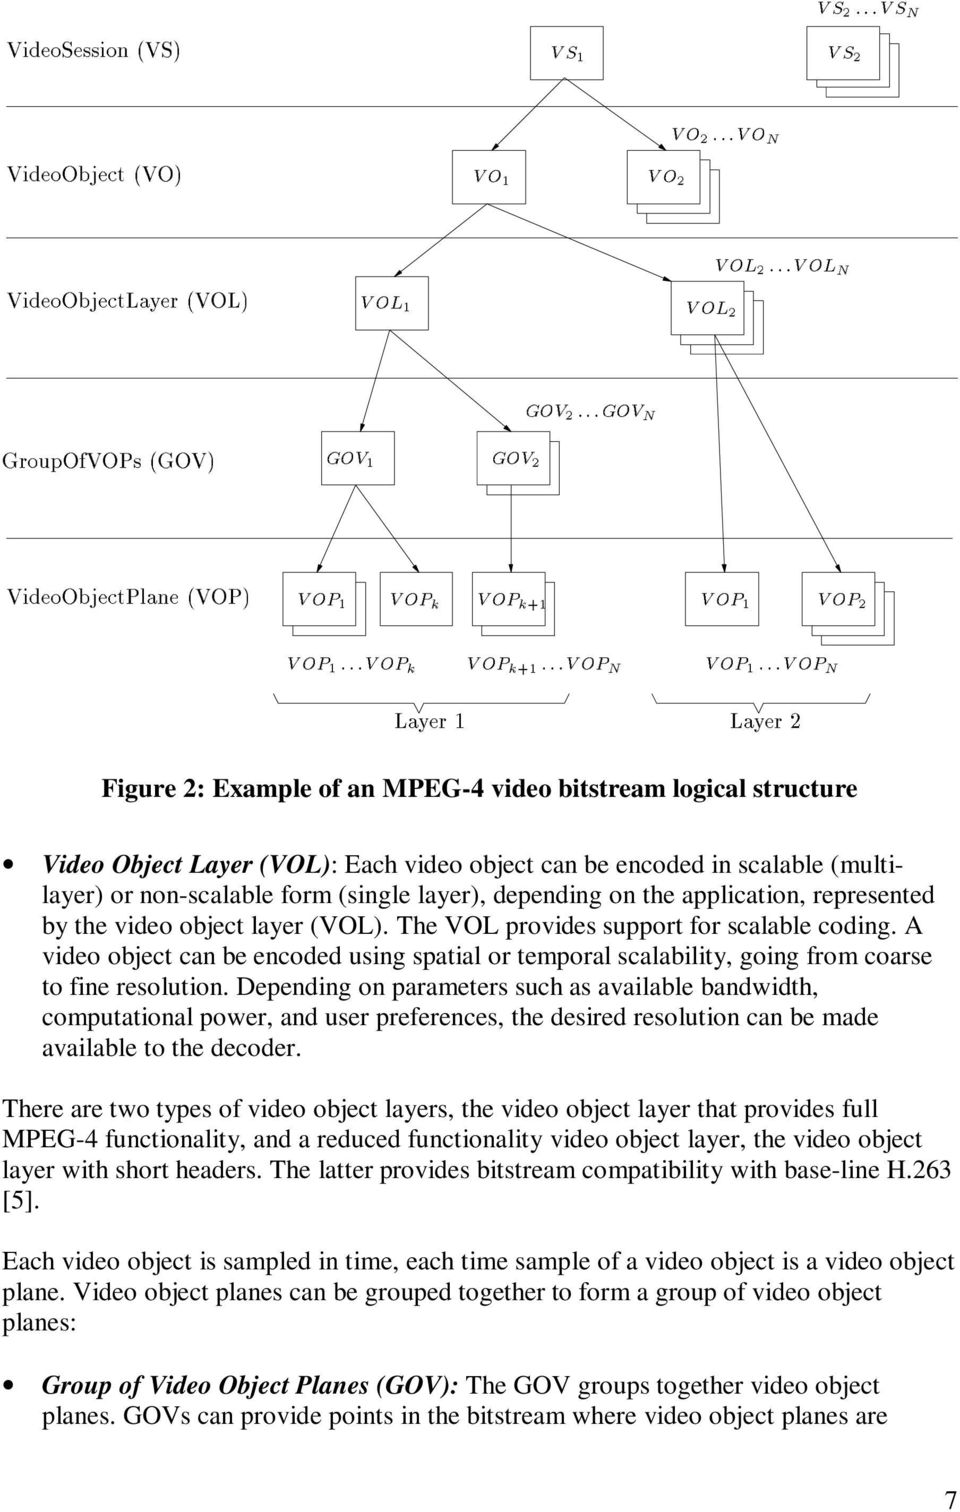 object can be encoded in scalable (multilayer) or non-scalable form (single layer), depending on the application, represented by the video object layer (VOL).